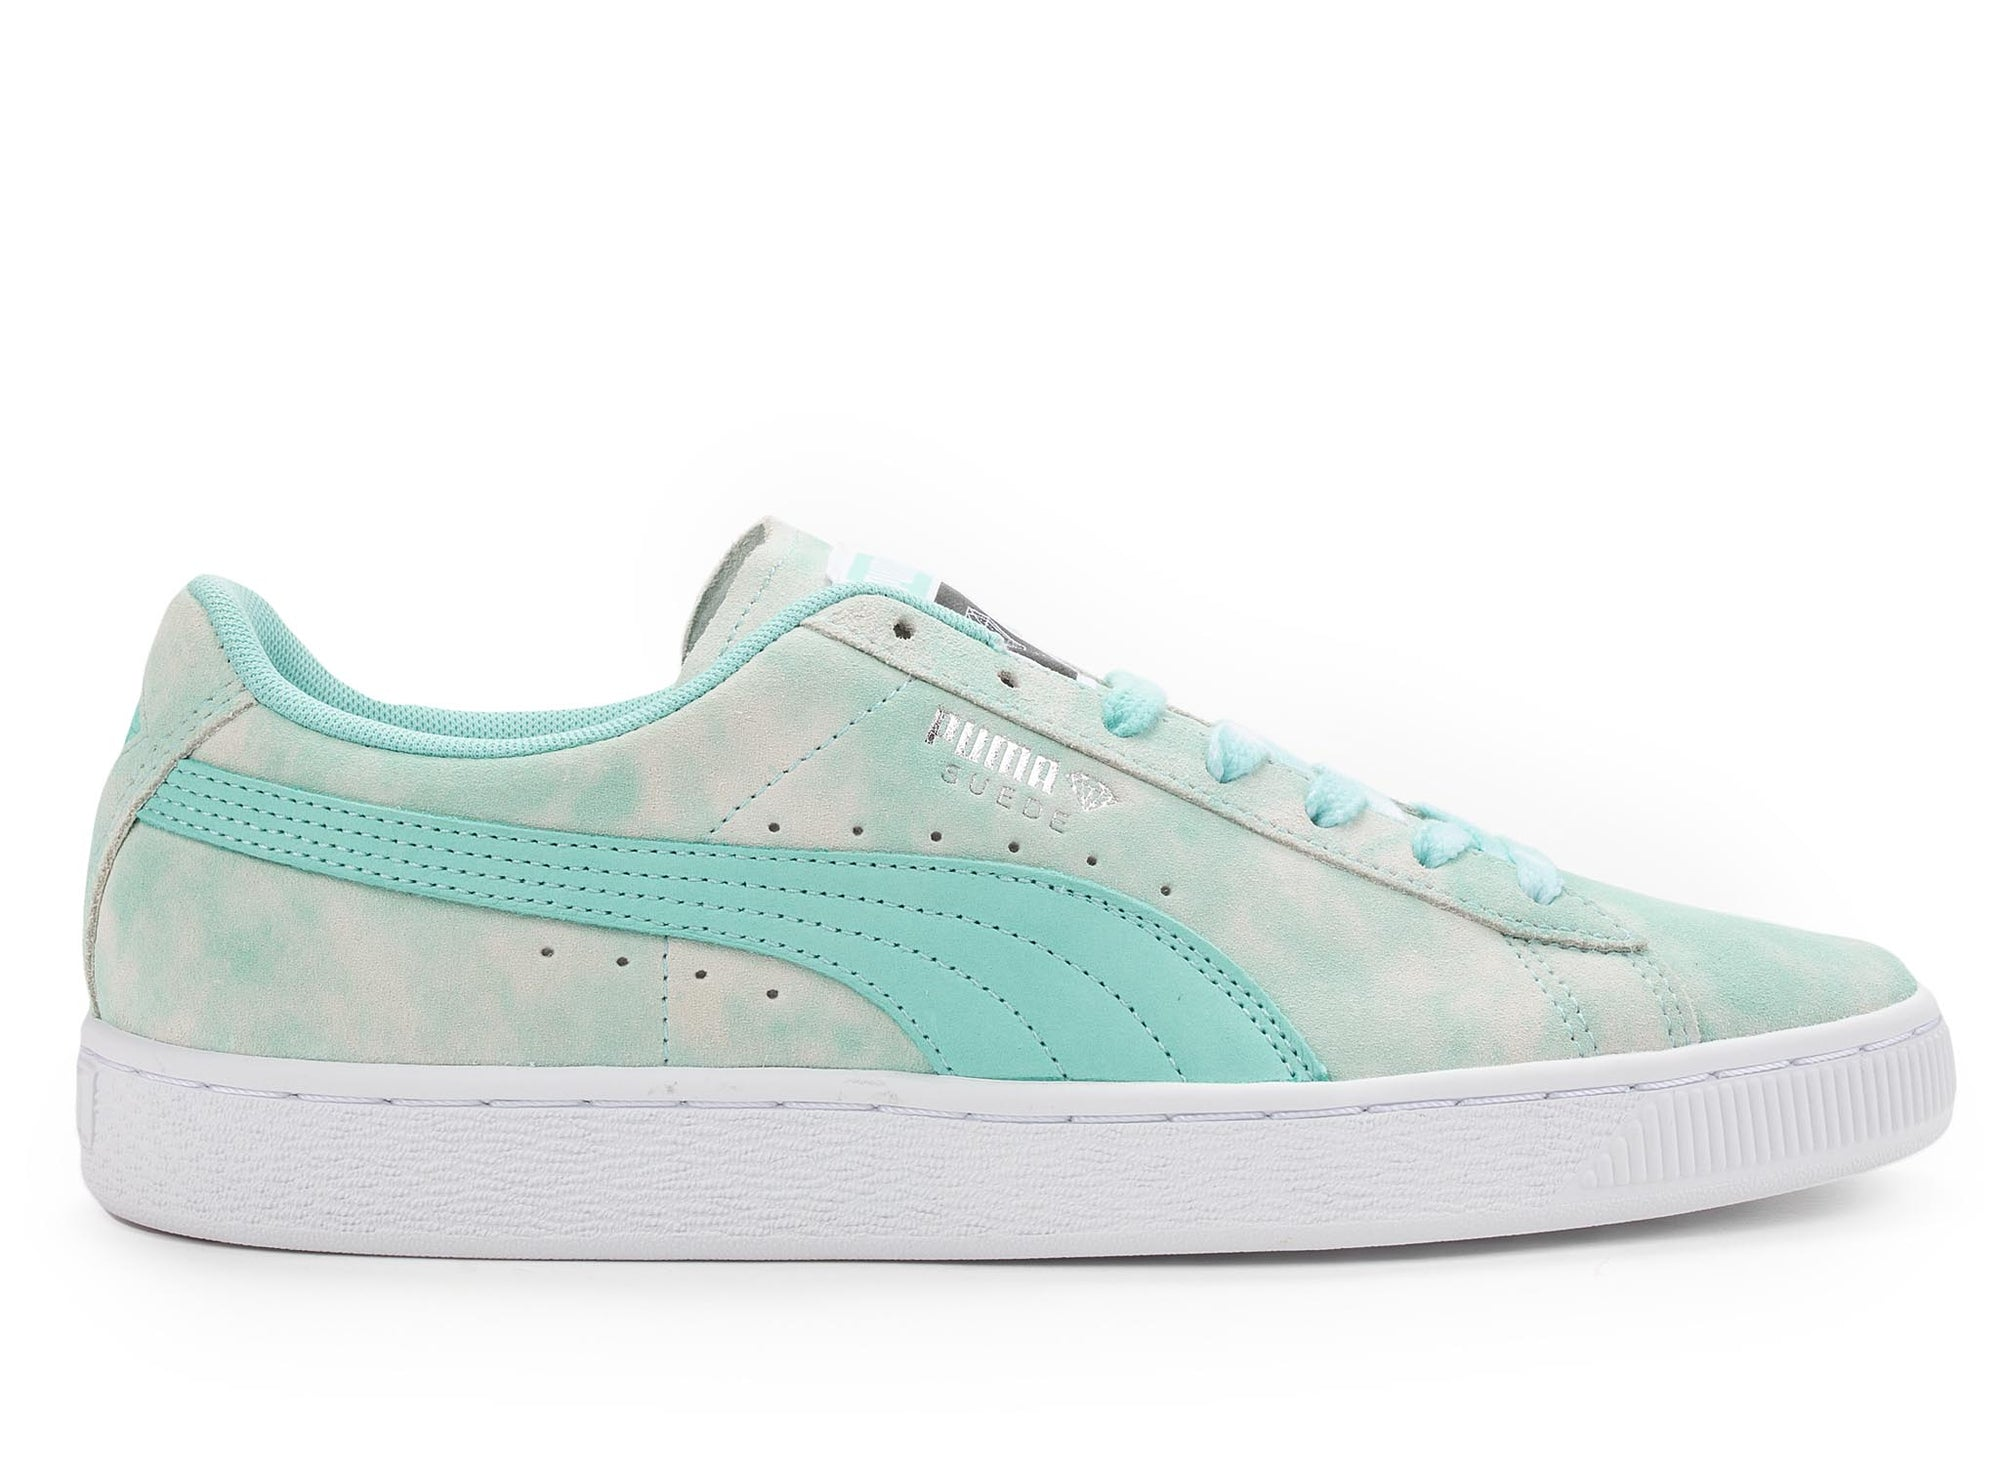 meilleur pas cher 788f2 5ff7c PUMA suede diamond supply